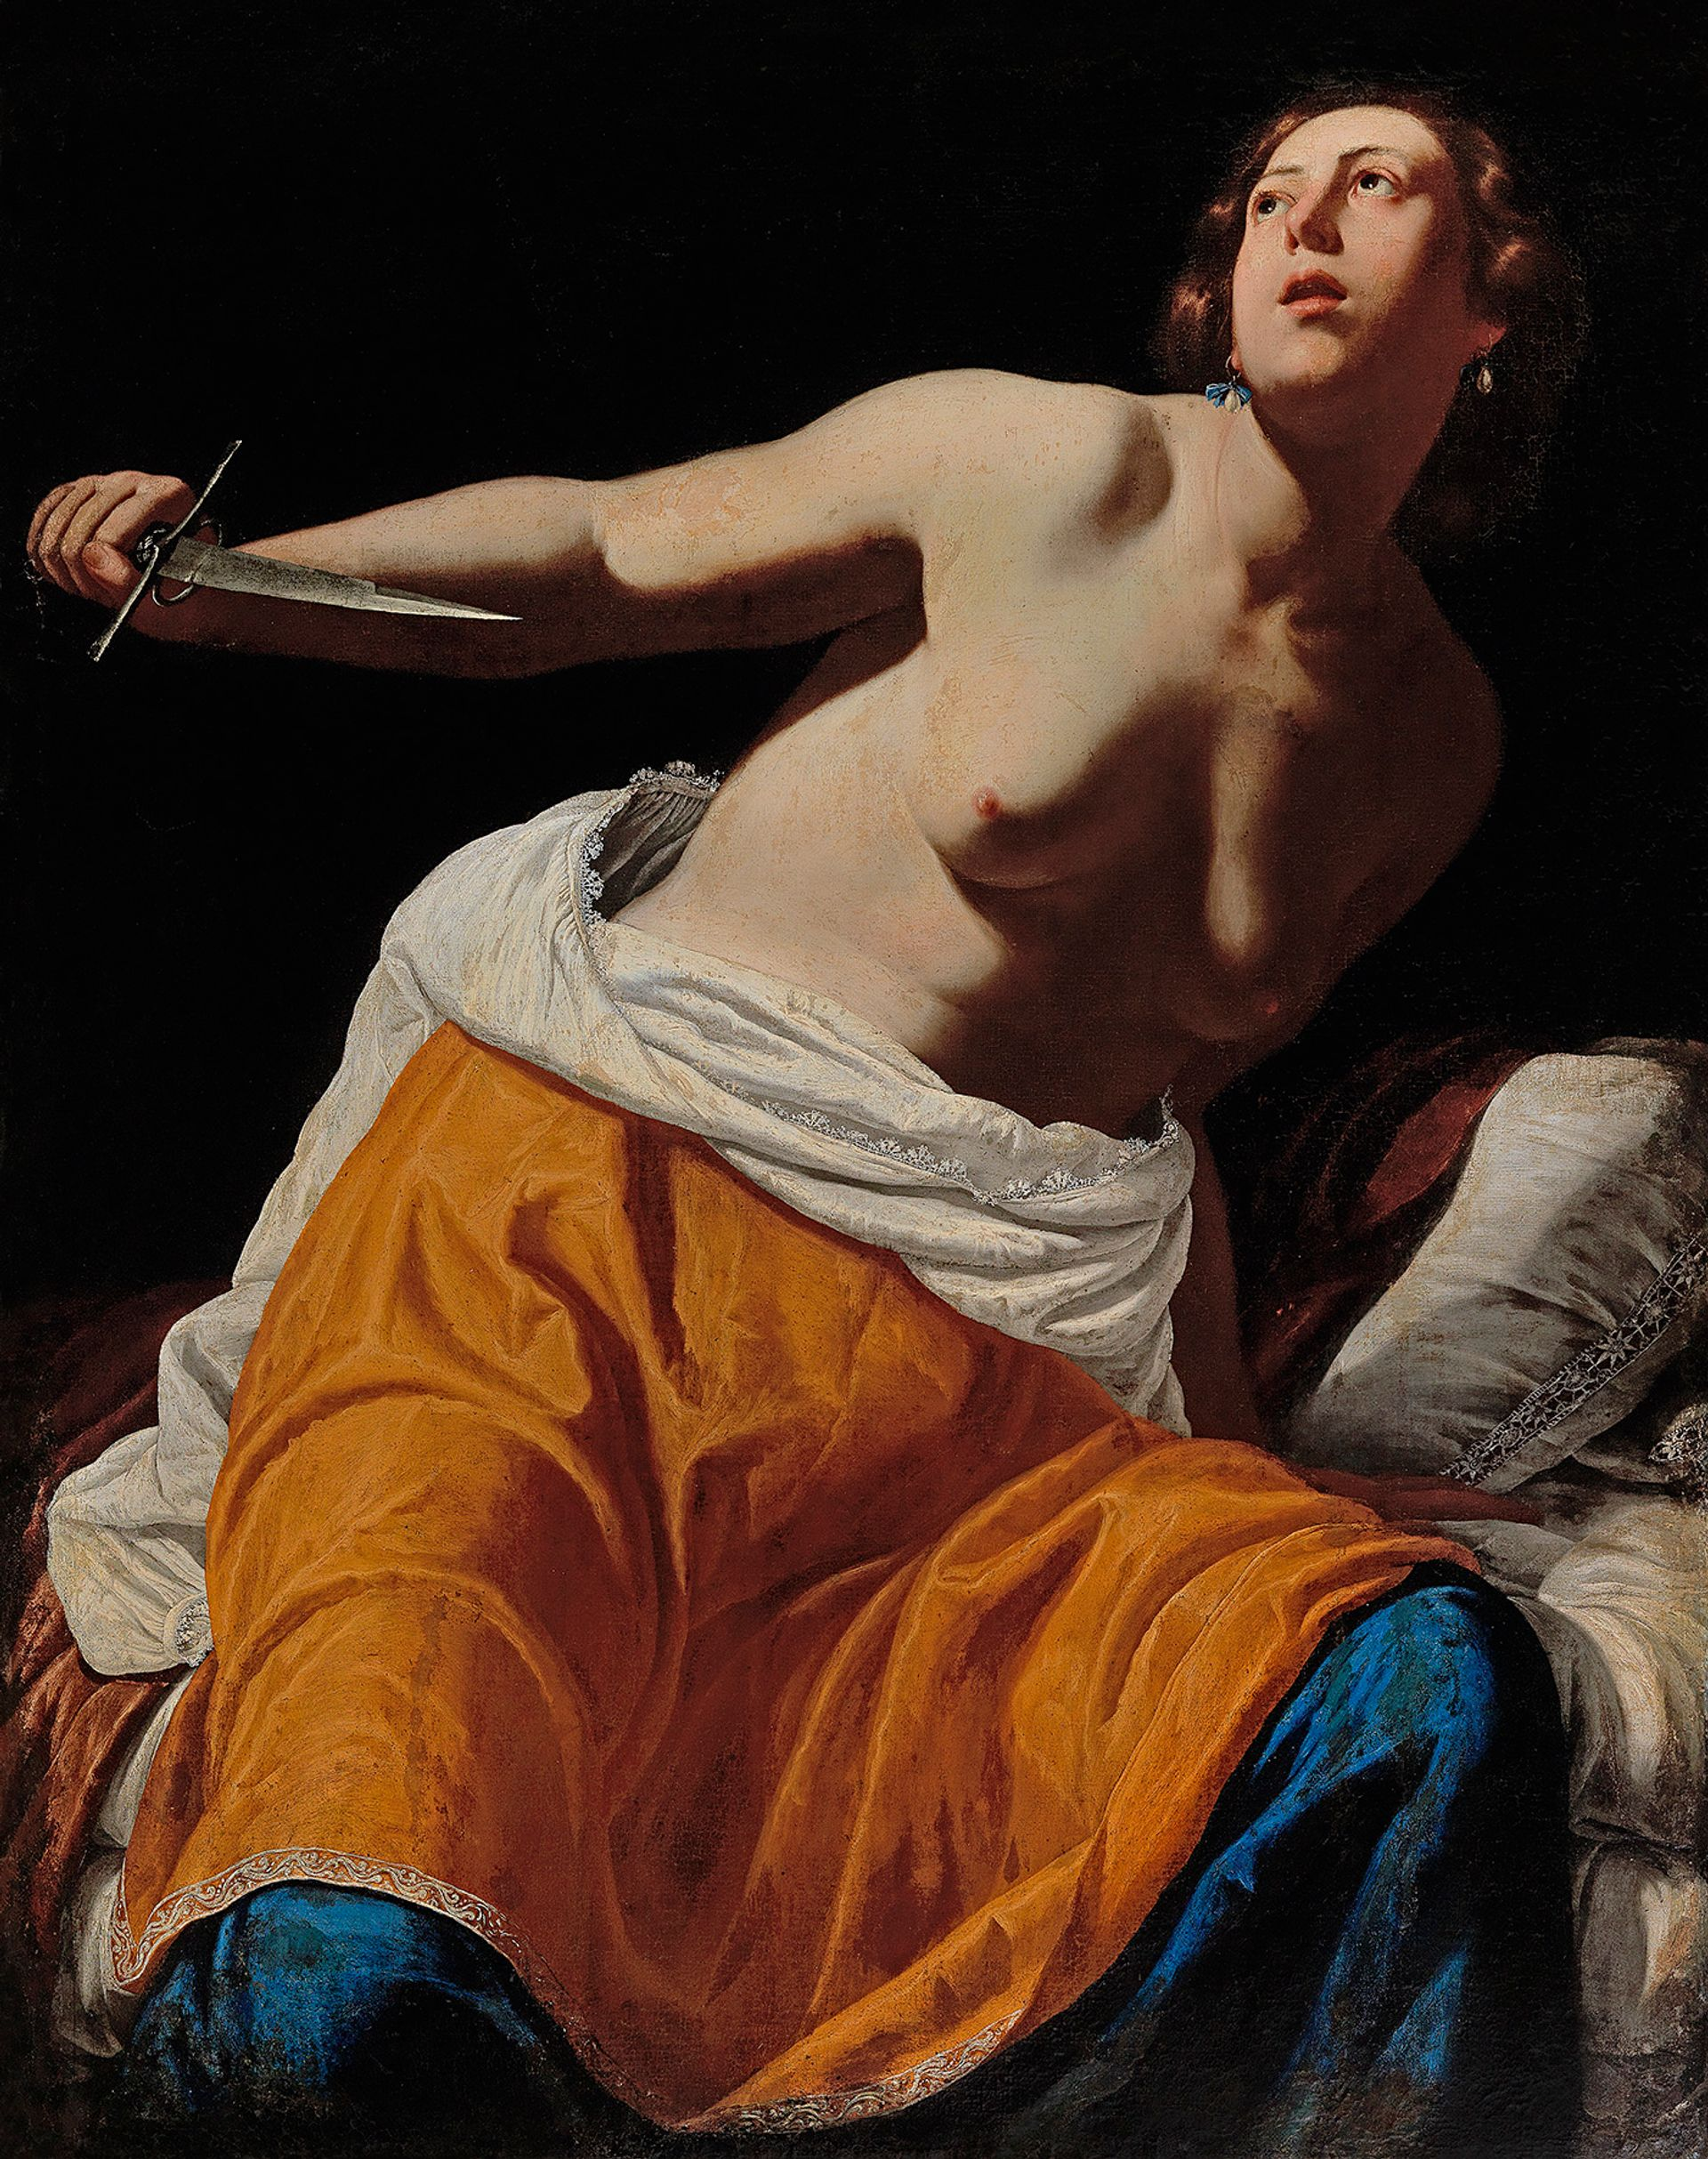 Lucretia, by the female Italian Baroque painter Artemisia Gentileschi, has never before been publicly exhibited Courtesy of Dorotheum